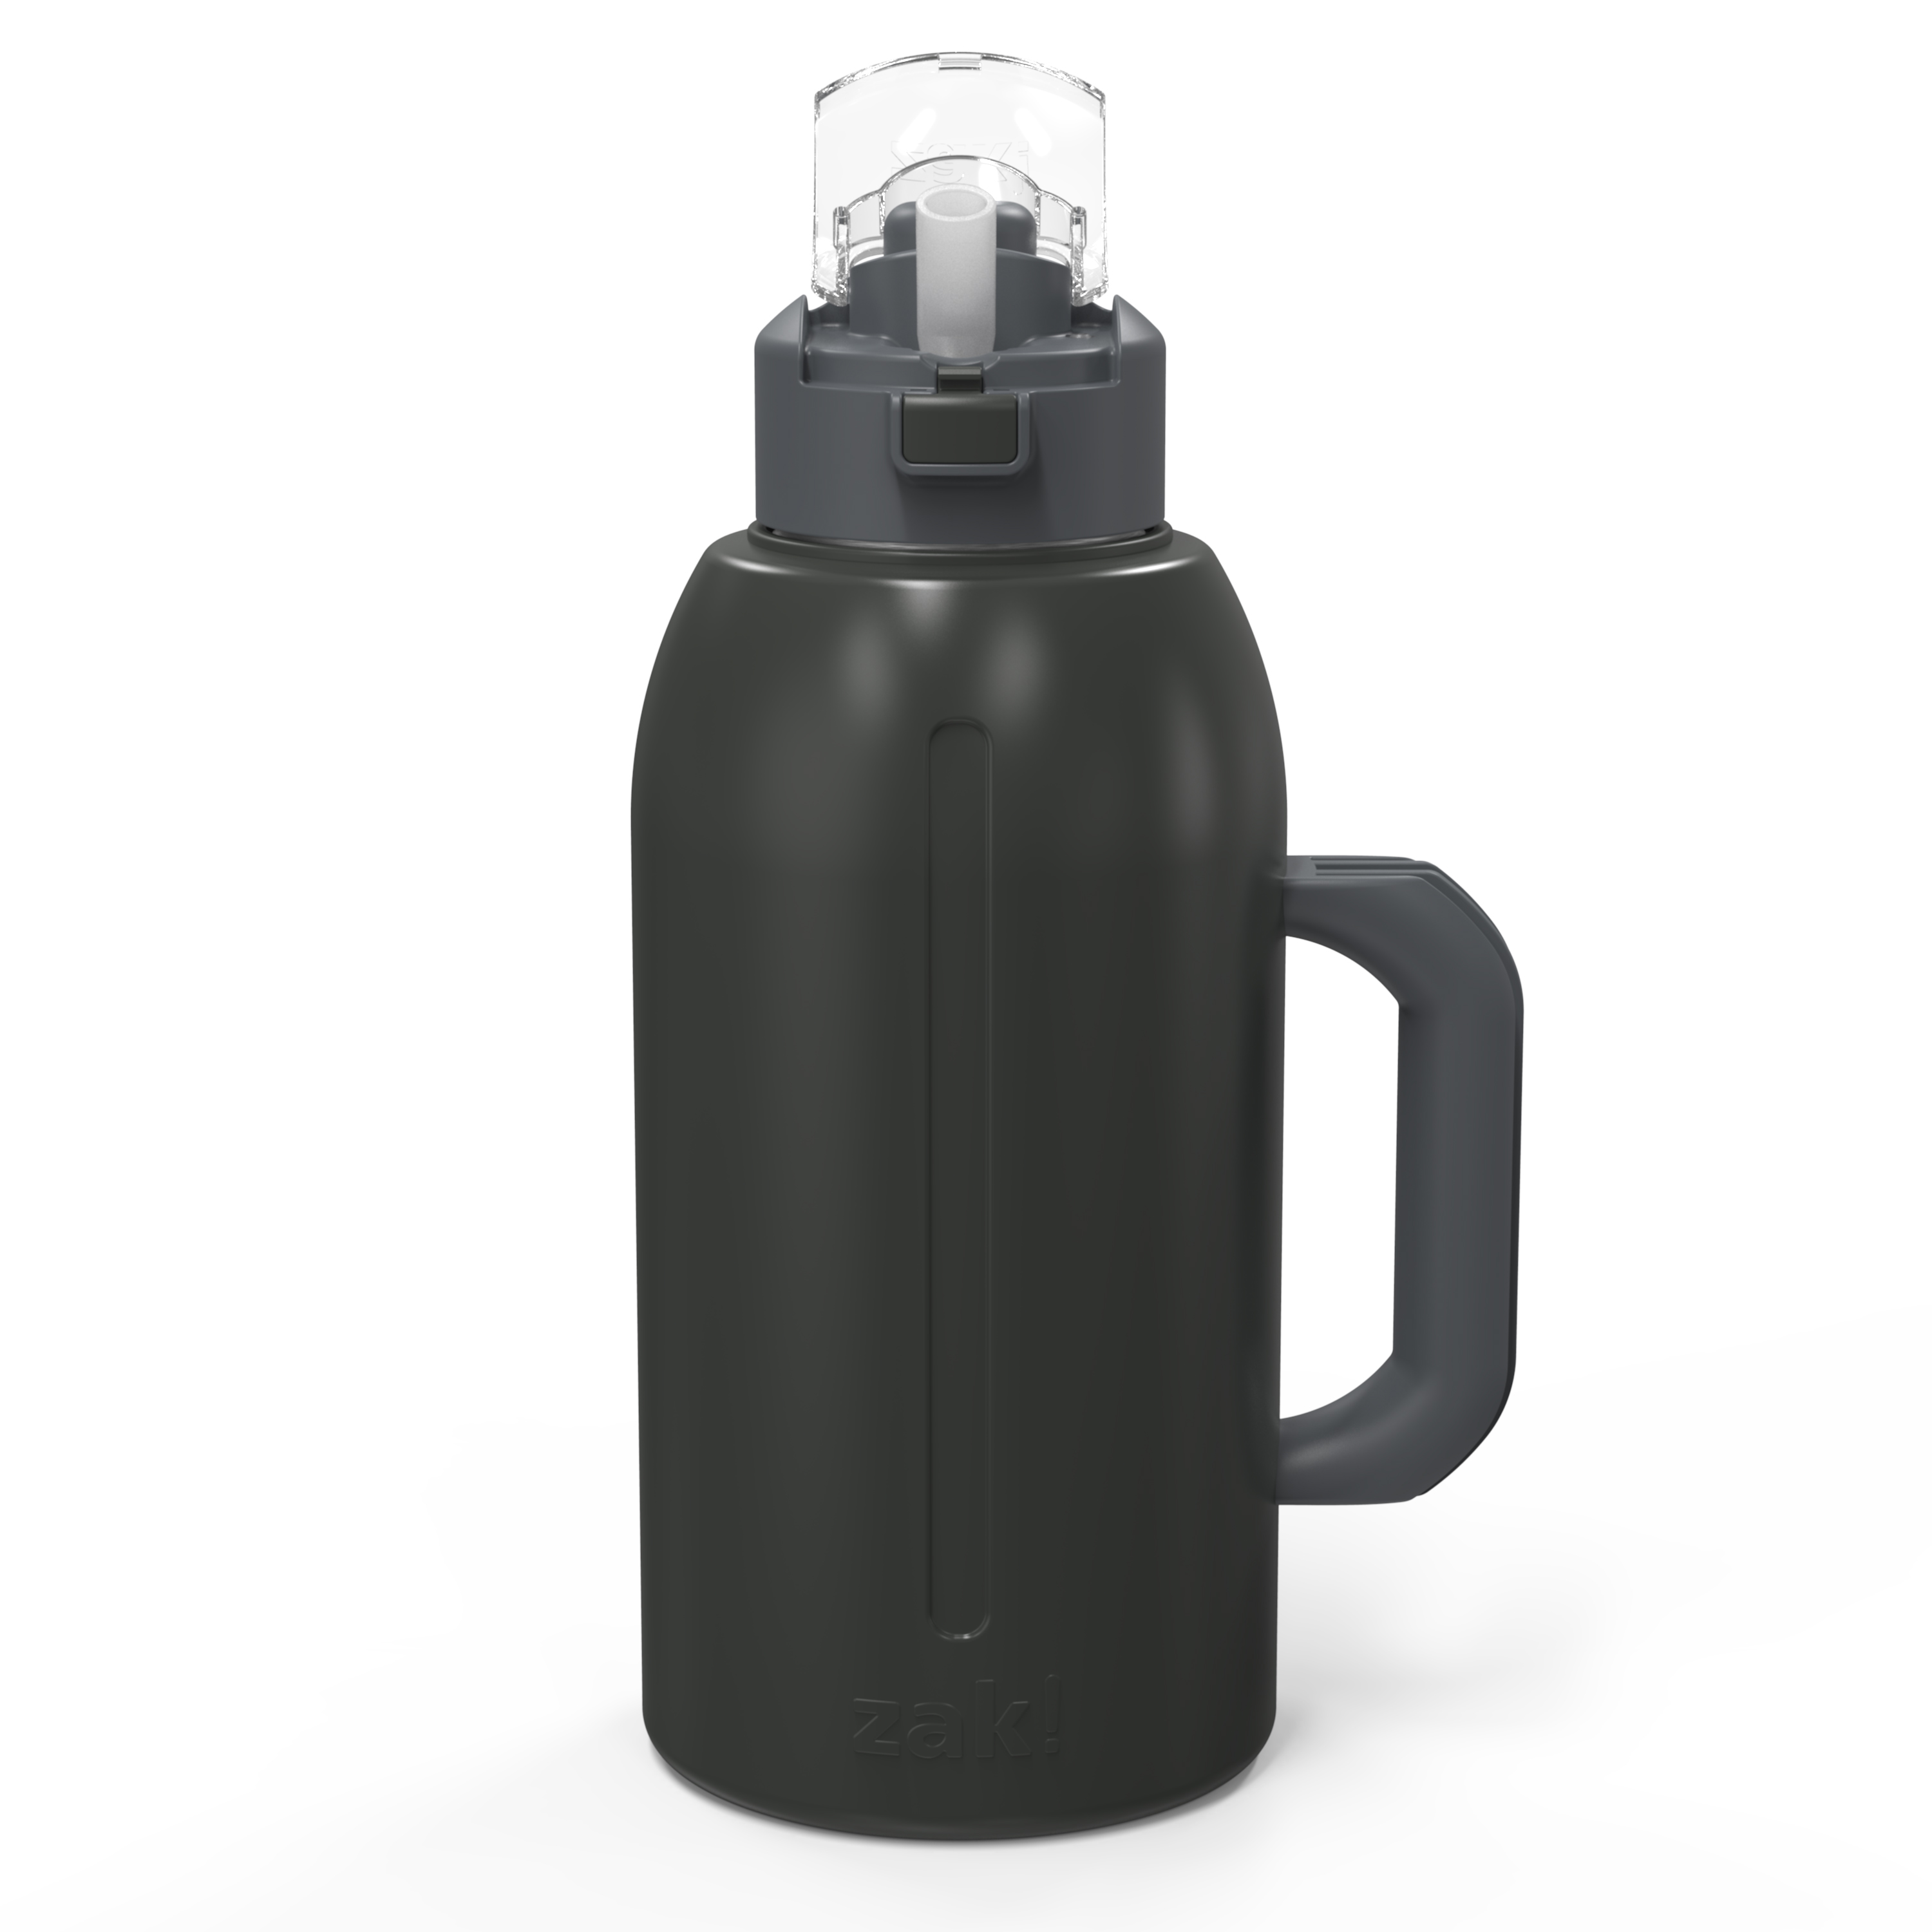 Genesis 64 ounce Vacuum Insulated Stainless Steel Tumbler, Charcoal slideshow image 5